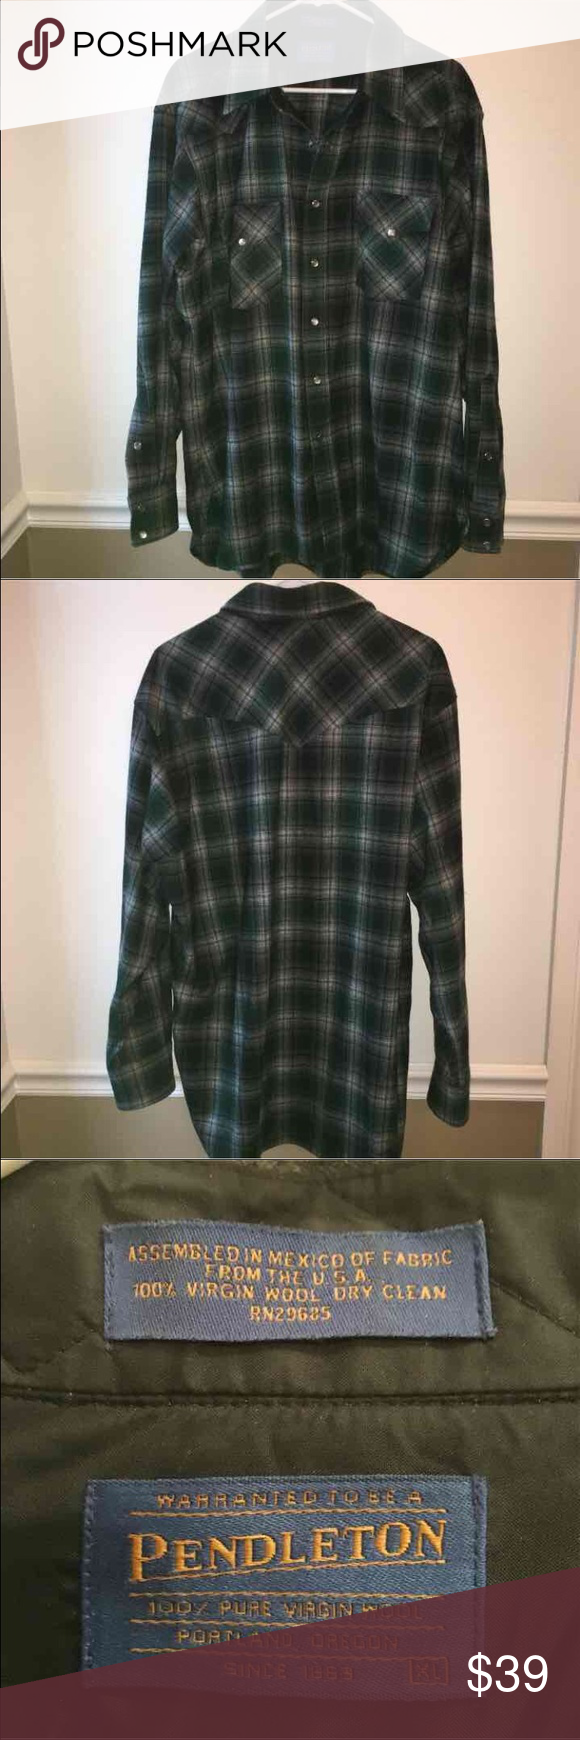 Pendleton canyon snap front shirt This shirt is in excellent used condition without holes, rips or stains. Perfect for the coming fall and winter months! Quality made through and through! Pendleton Shirts Casual Button Down Shirts